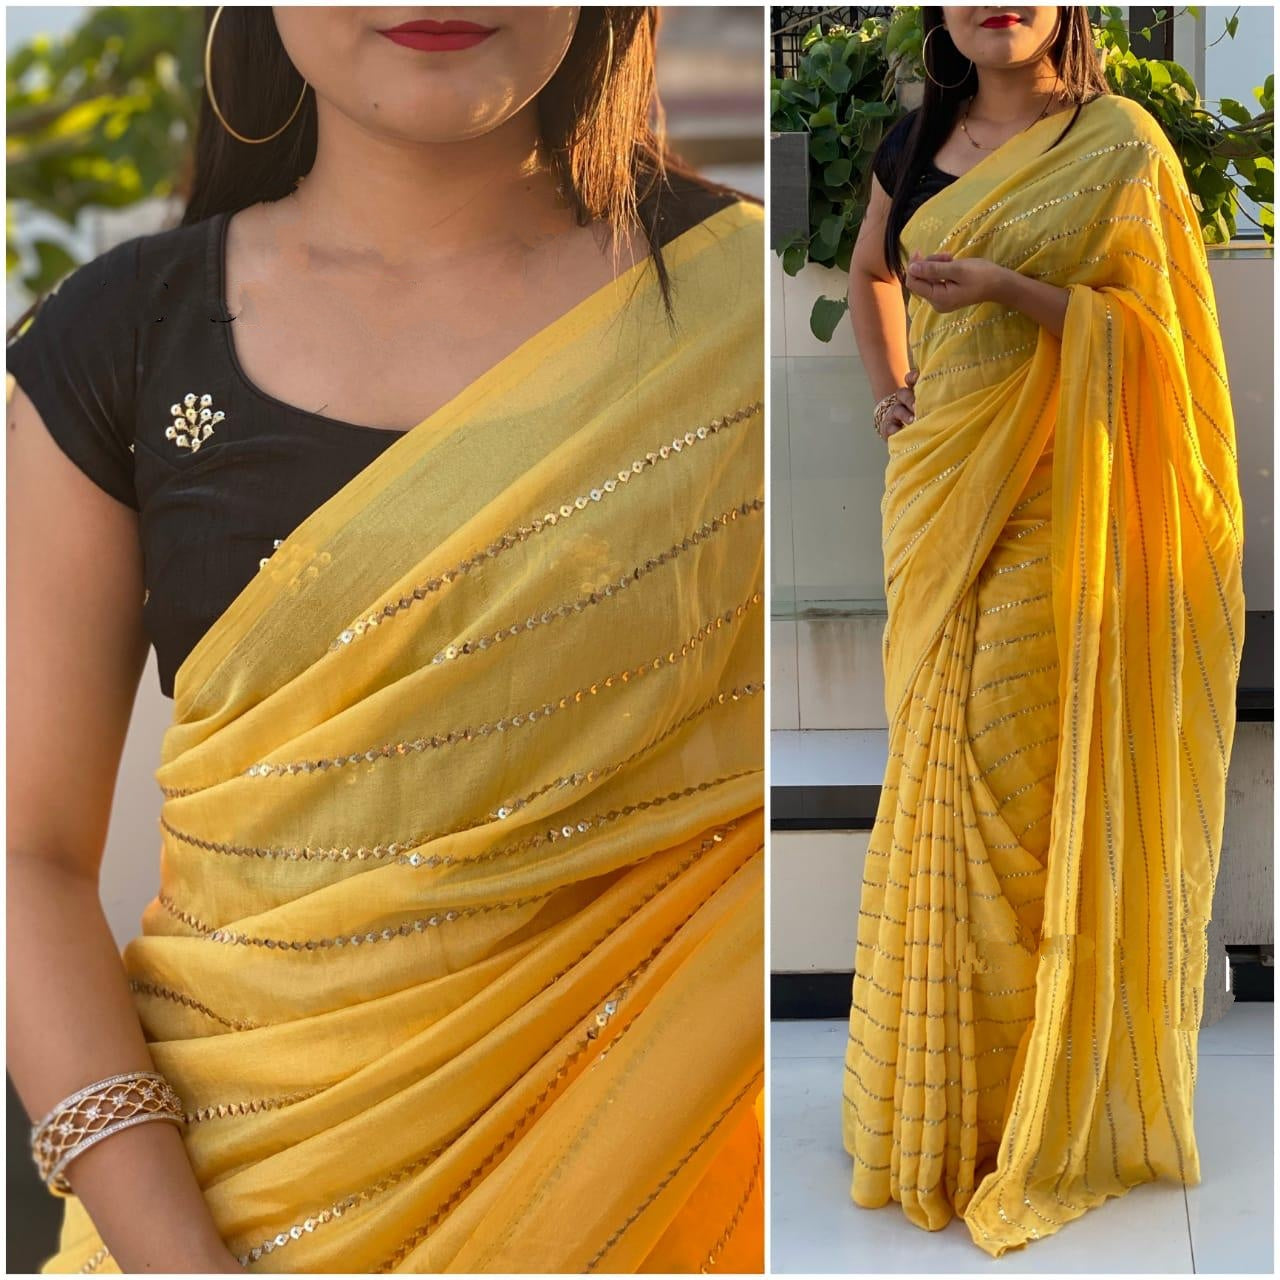 Staggering Yellow & Black Georgette With Embroidered Work Saree for Party Wear